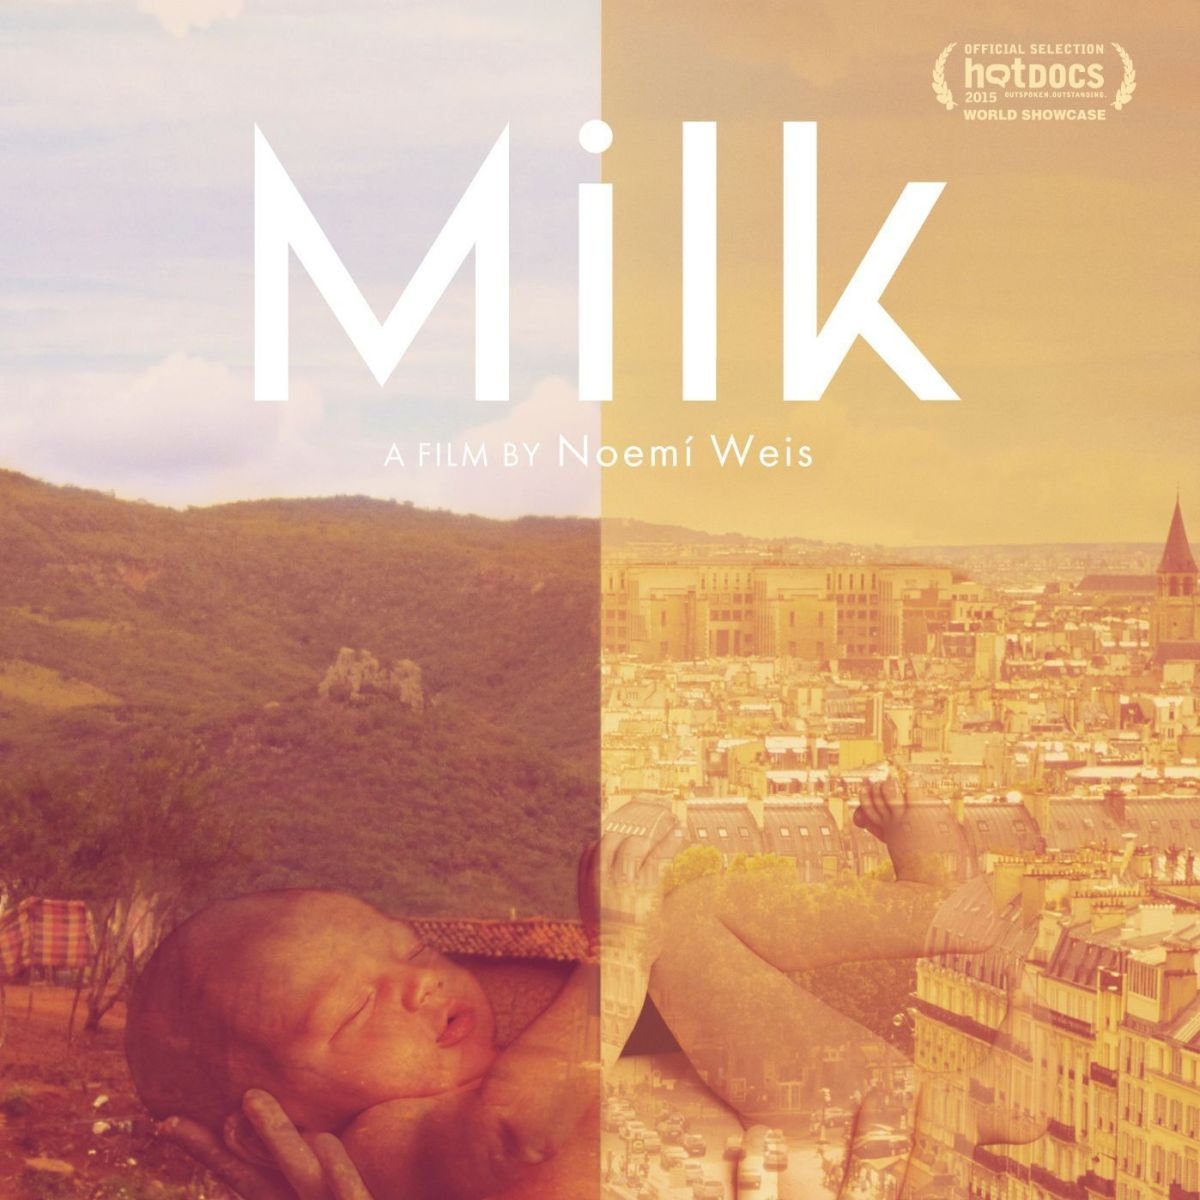 El documental Milk, la lactancia y el negocio de la leche de fórmula